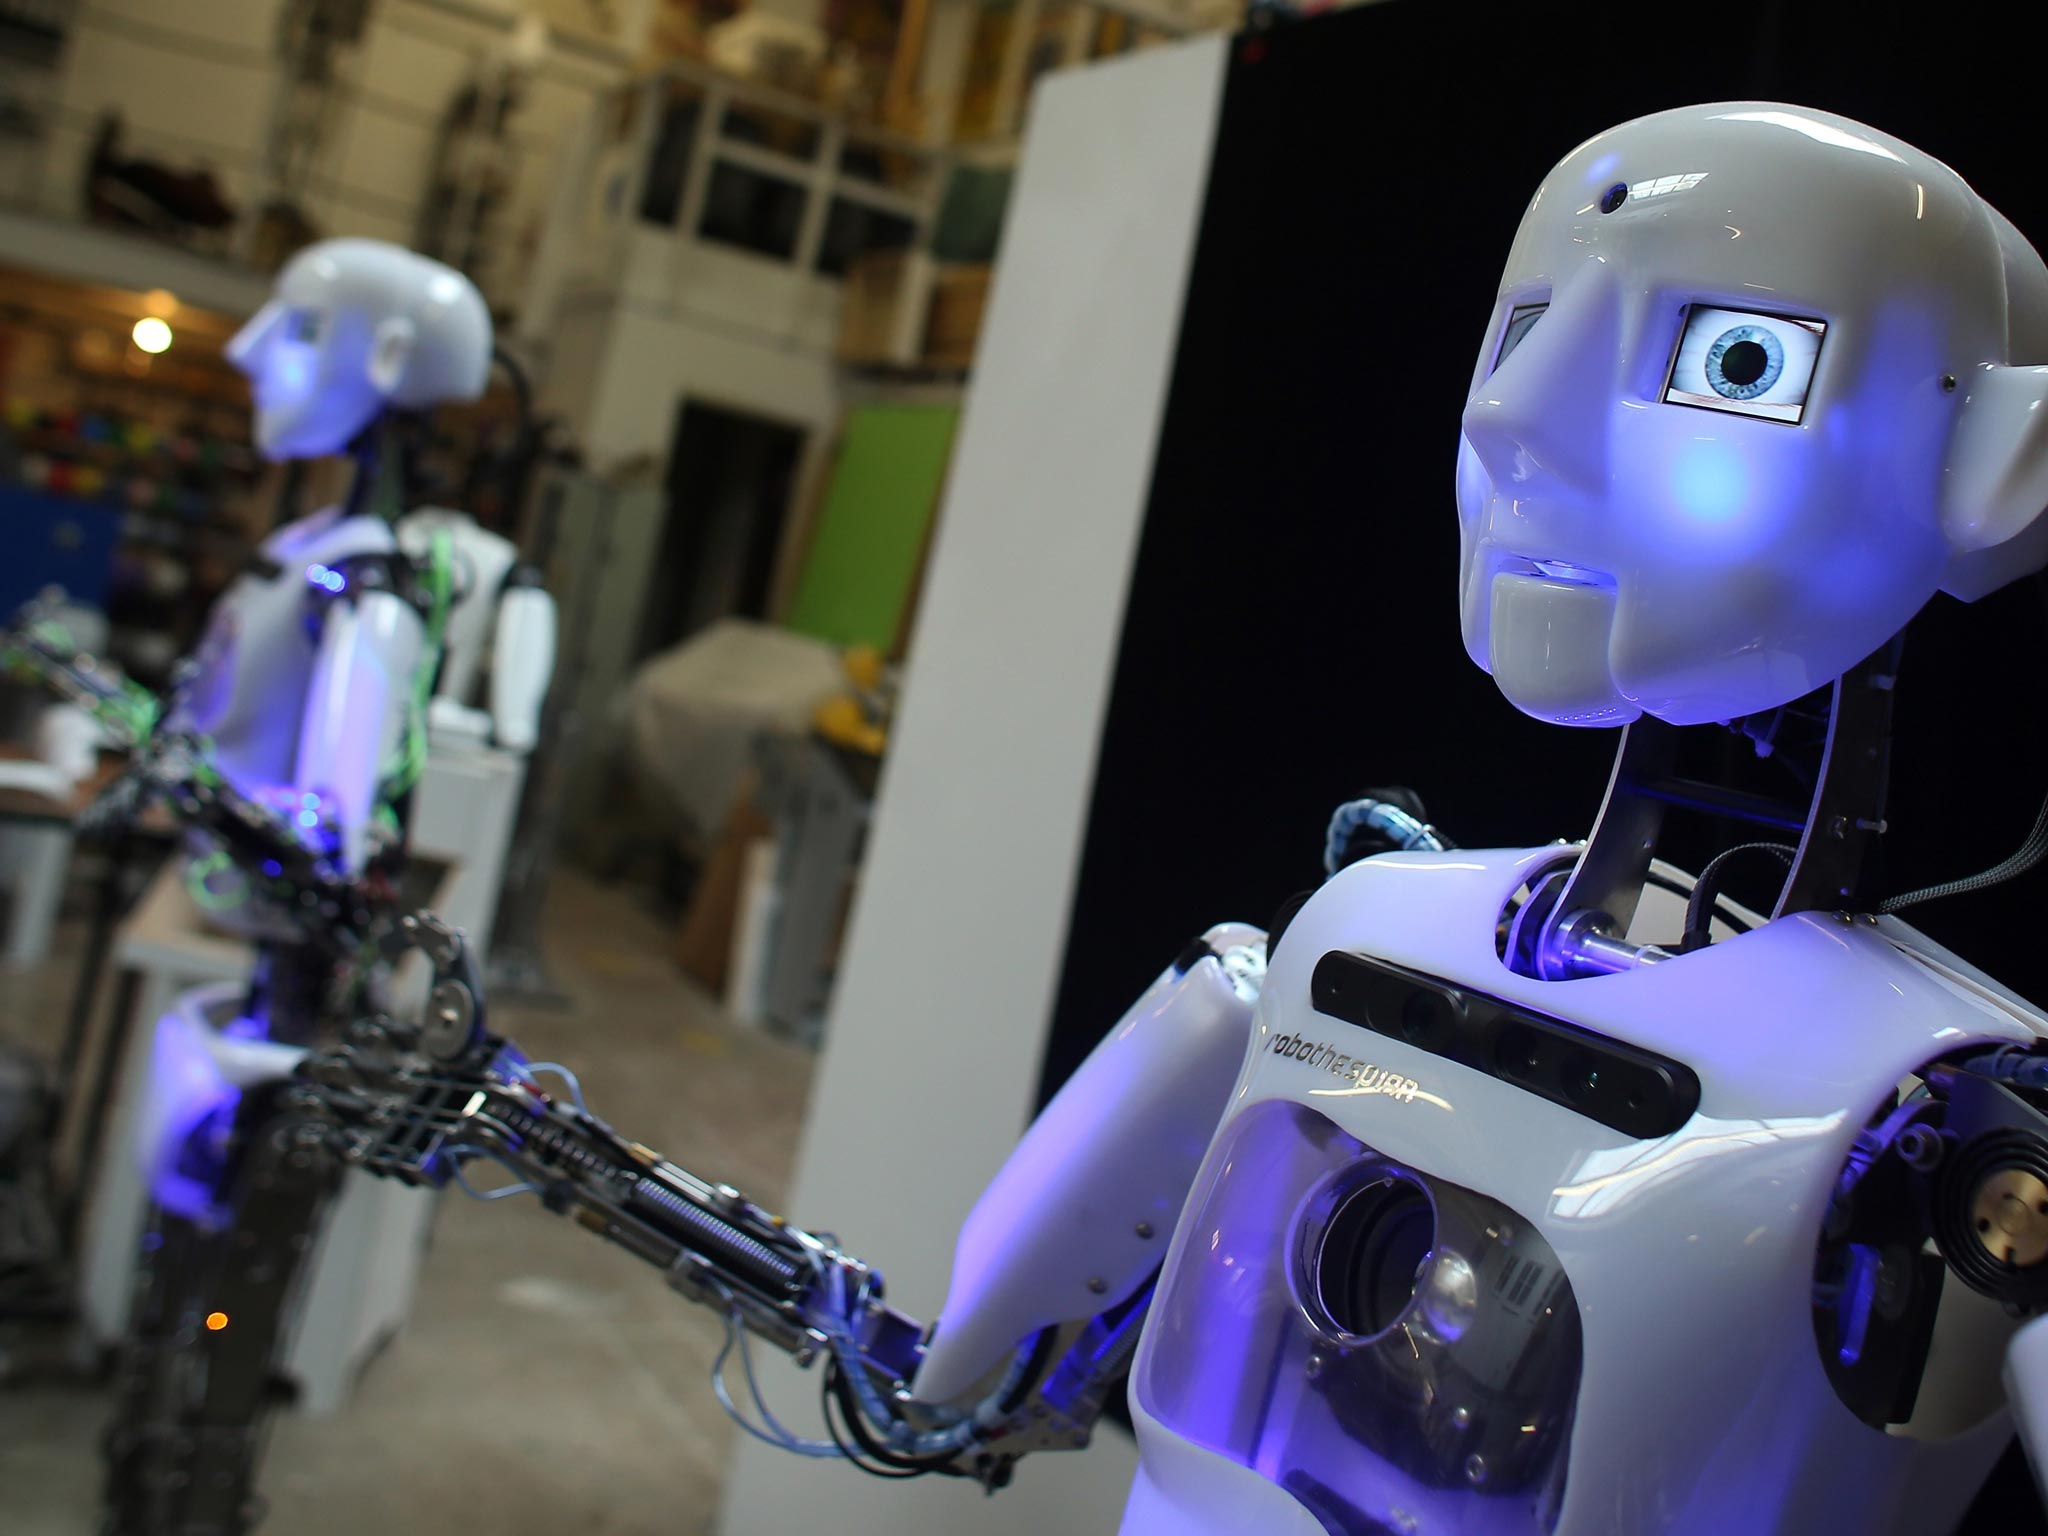 27 of millennials say they would consider dating a robot